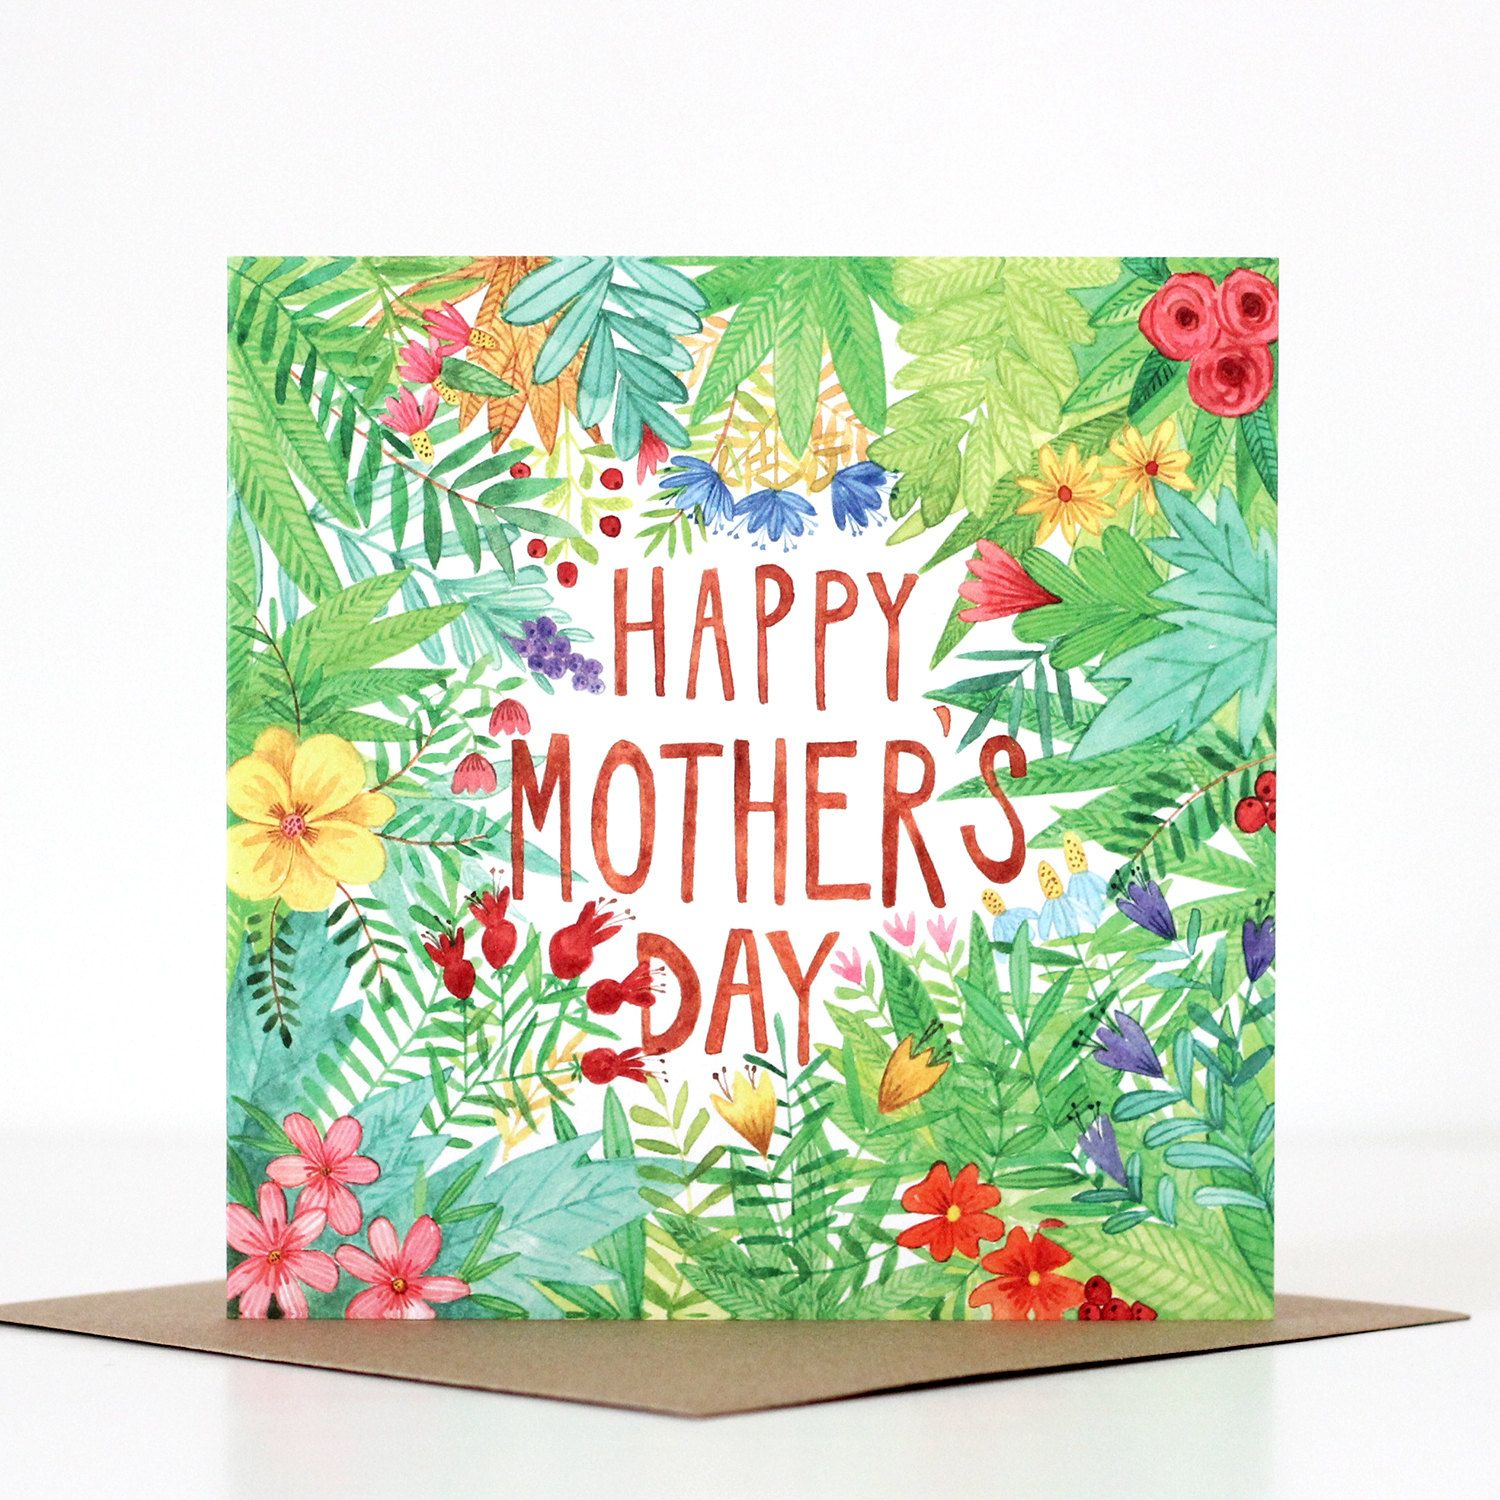 Mothers day greeting card floral illustration thank you card items similar to mothers day greeting card floral illustration thank you card on etsy m4hsunfo